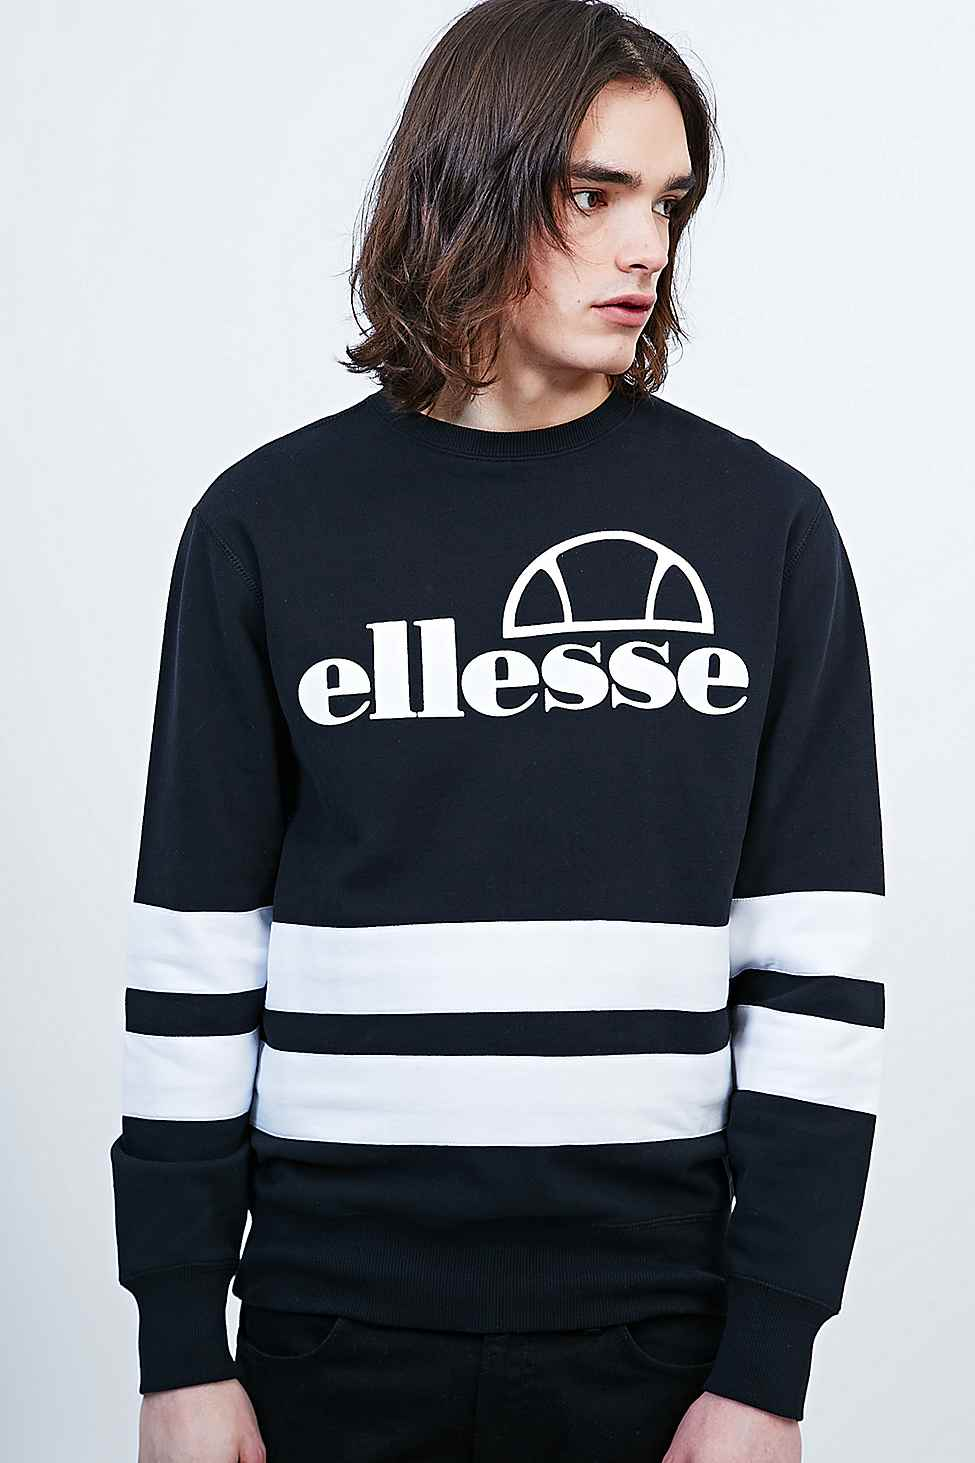 b88ee61248 Ellesse Stripe Sweatshirt In Black And White for Men - Lyst